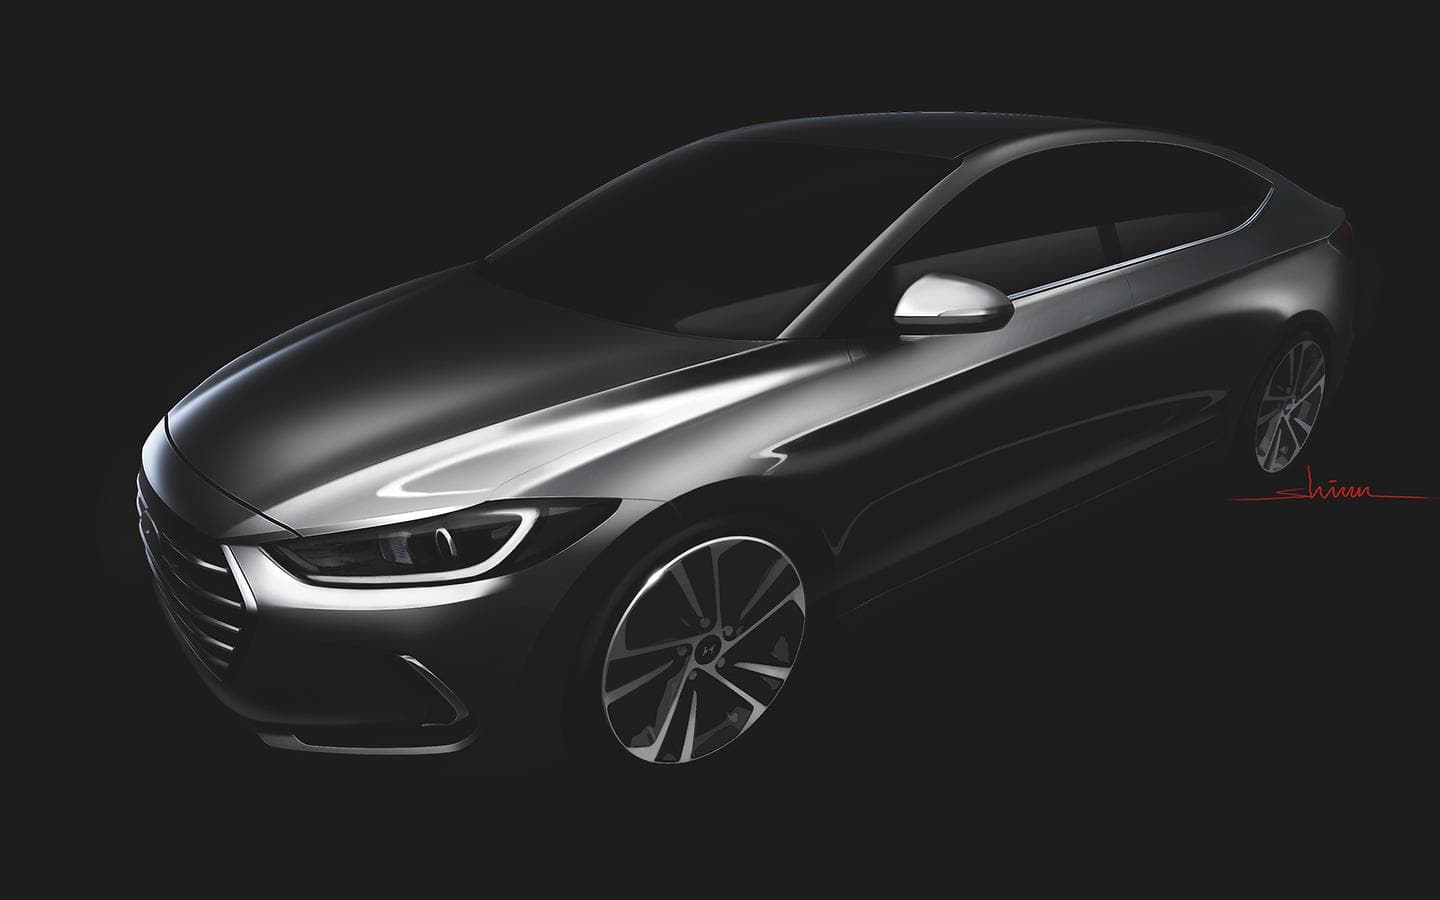 Sleek All-New Elantra Reveals its Dynamic Impression